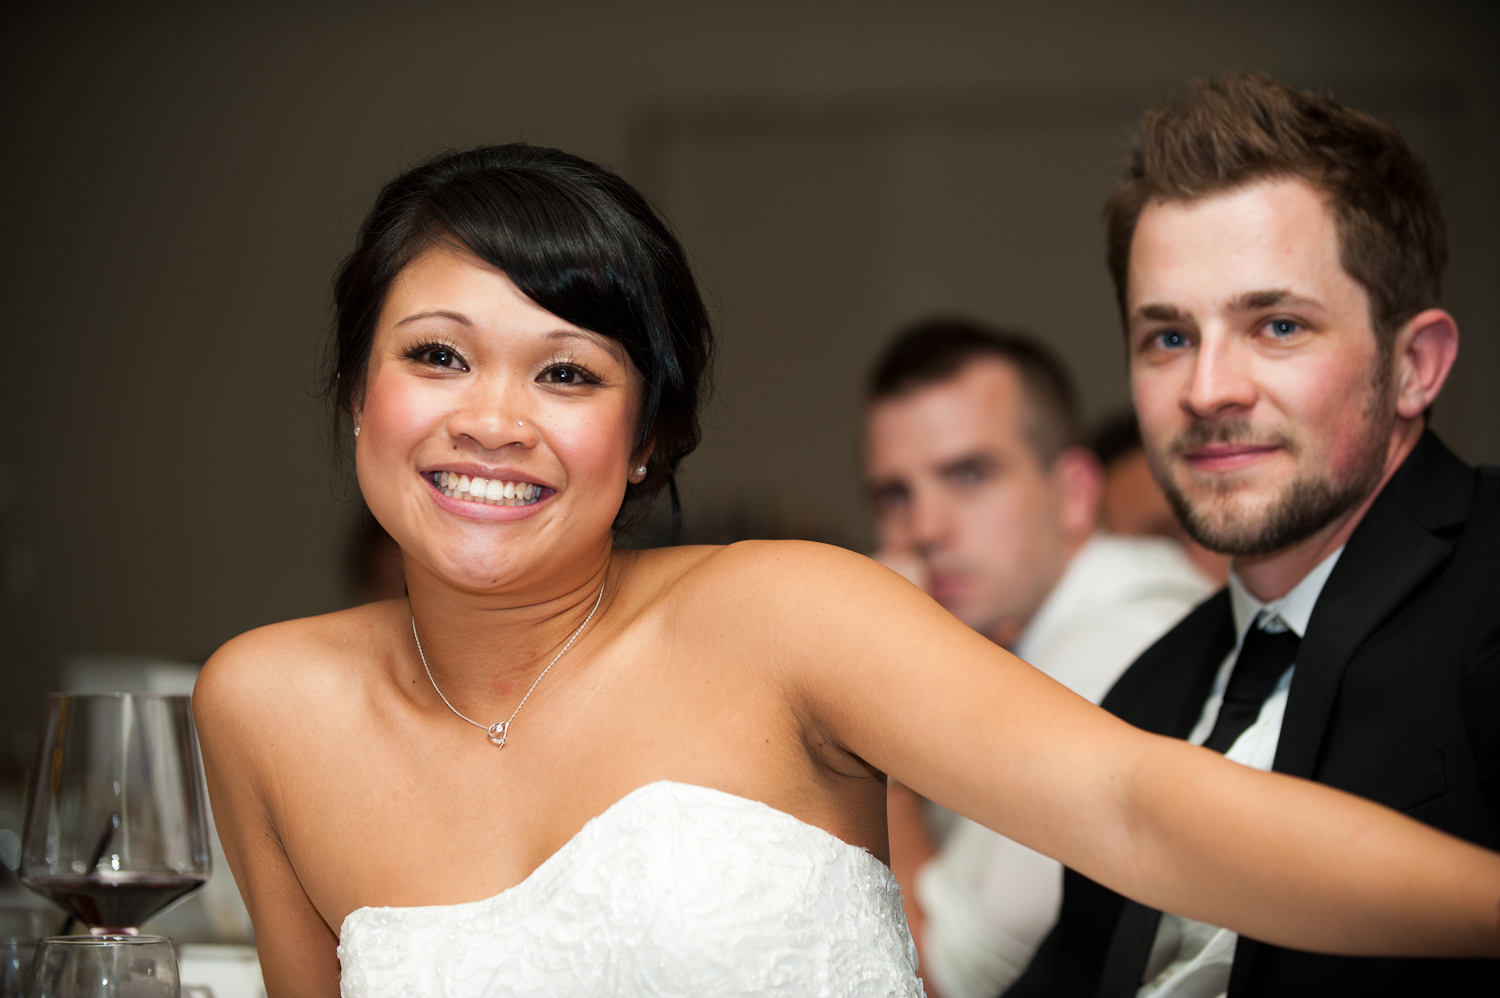 sean-williams-wedding-lifestyle-photography-edmonton-photographer-professional-25.jpg